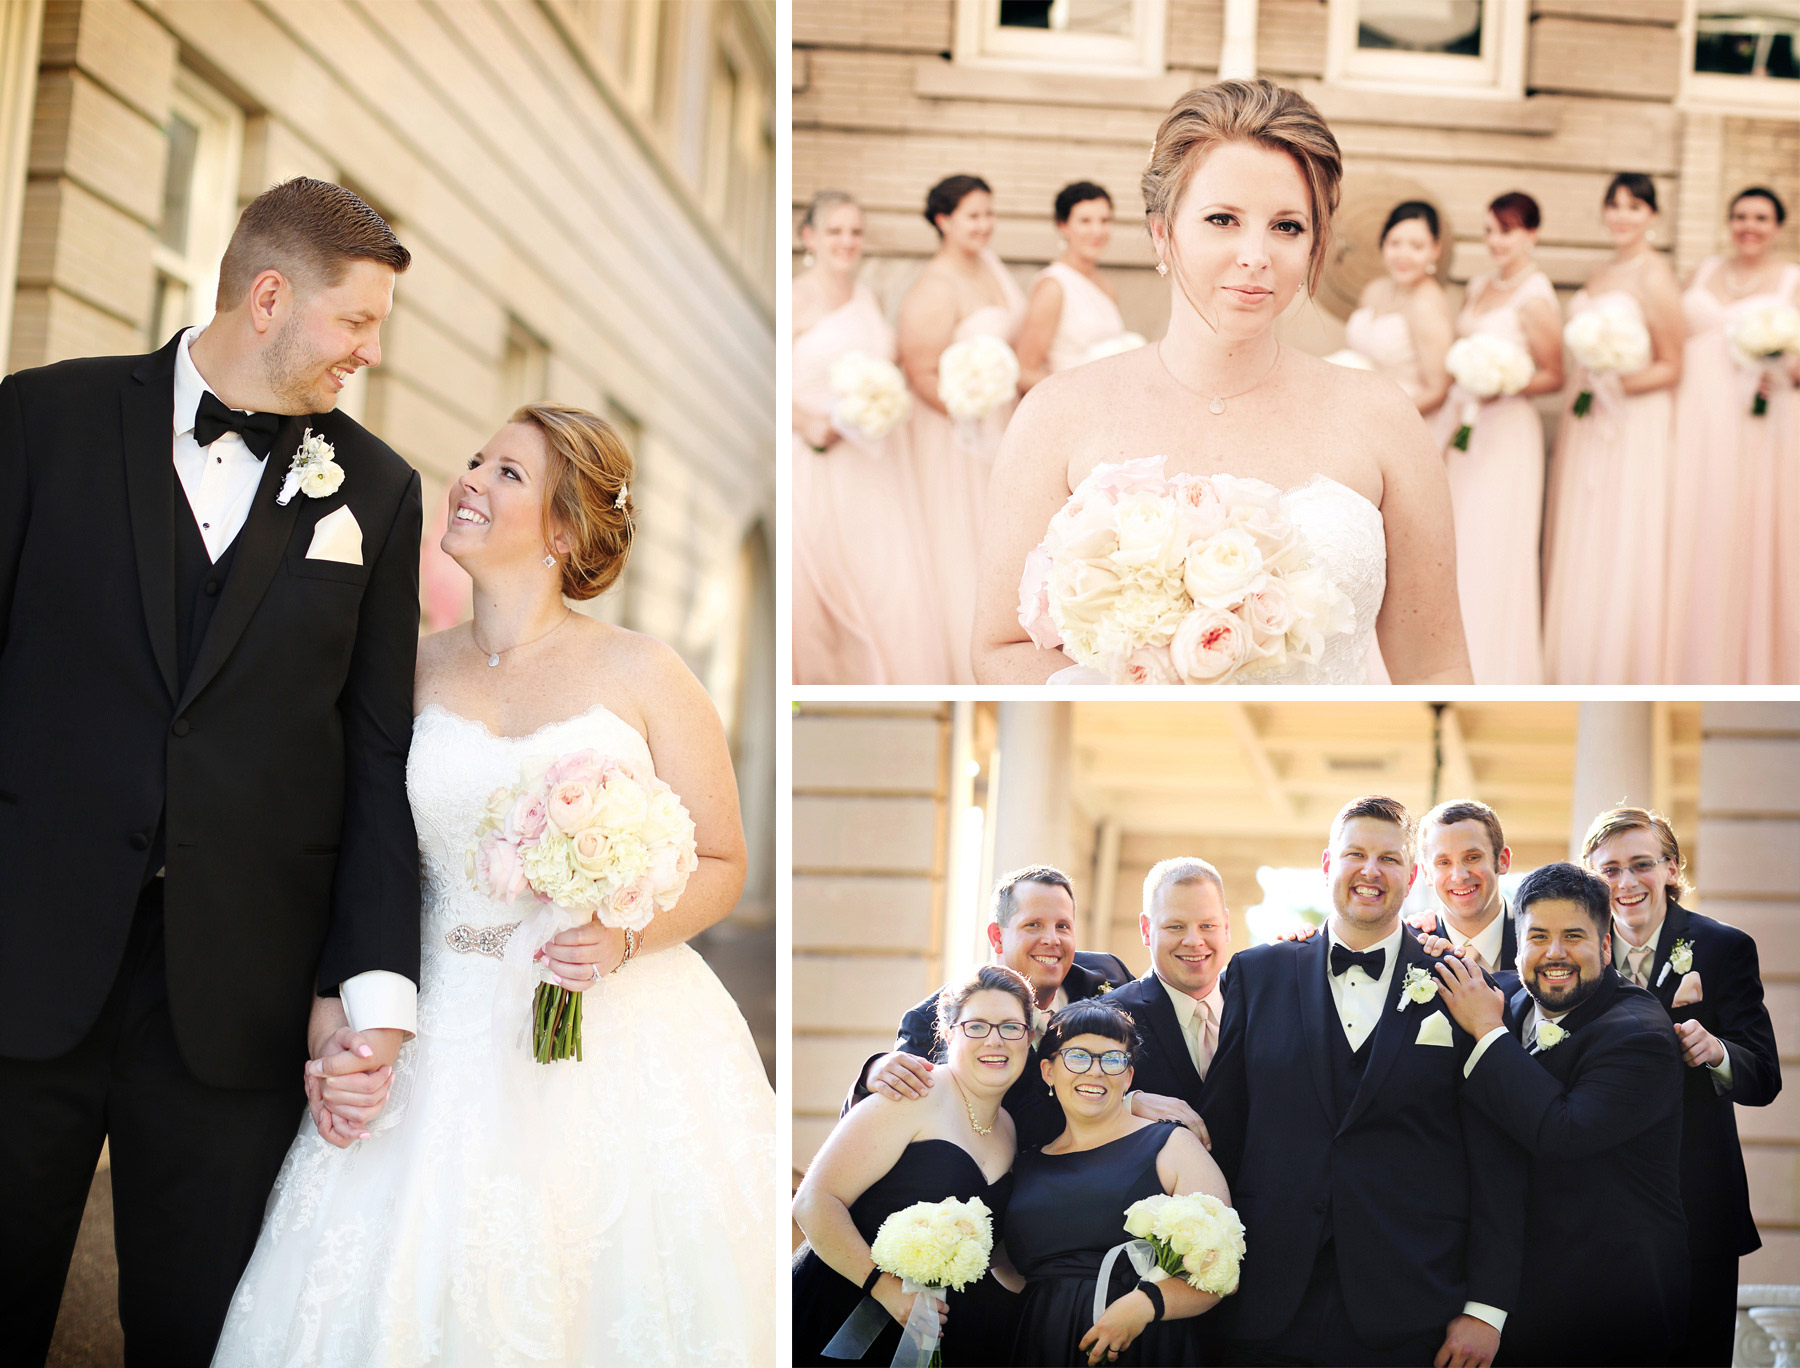 08-Minneapolis-Minnesota-Wedding-Photography-by-Vick-Photography-Semple-Mansion-Wedding-Party-Groups-Caitlin-&-Derrick.jpg